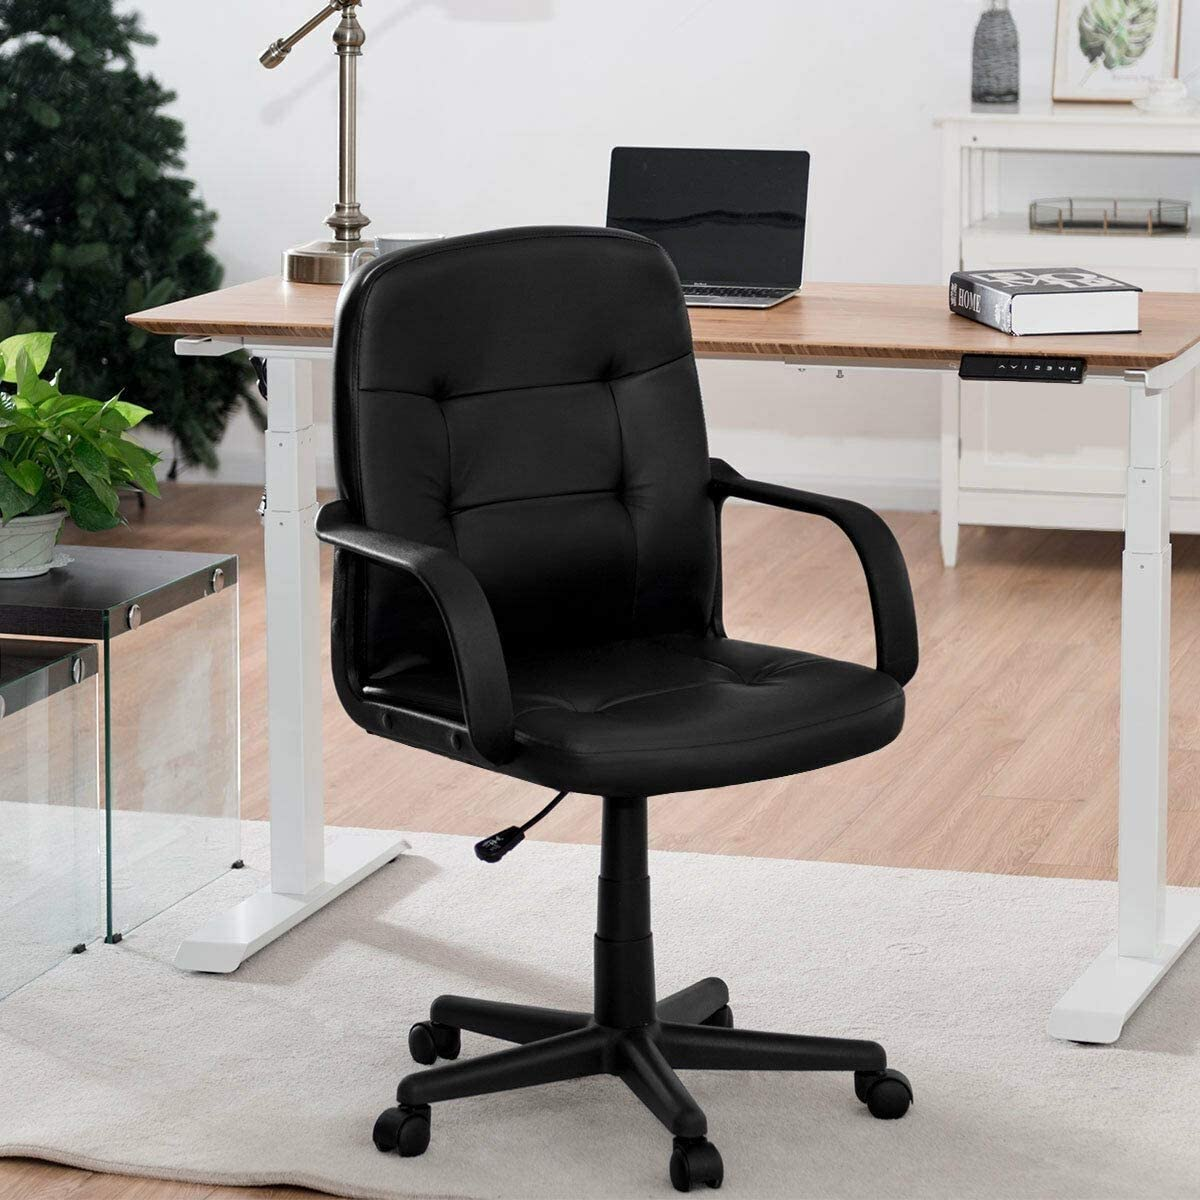 KOVALENTHOR Office Computer Desk Chair, Swivel Chair with Armrests, Ergonomic Mid-Back Executive Chair, Black